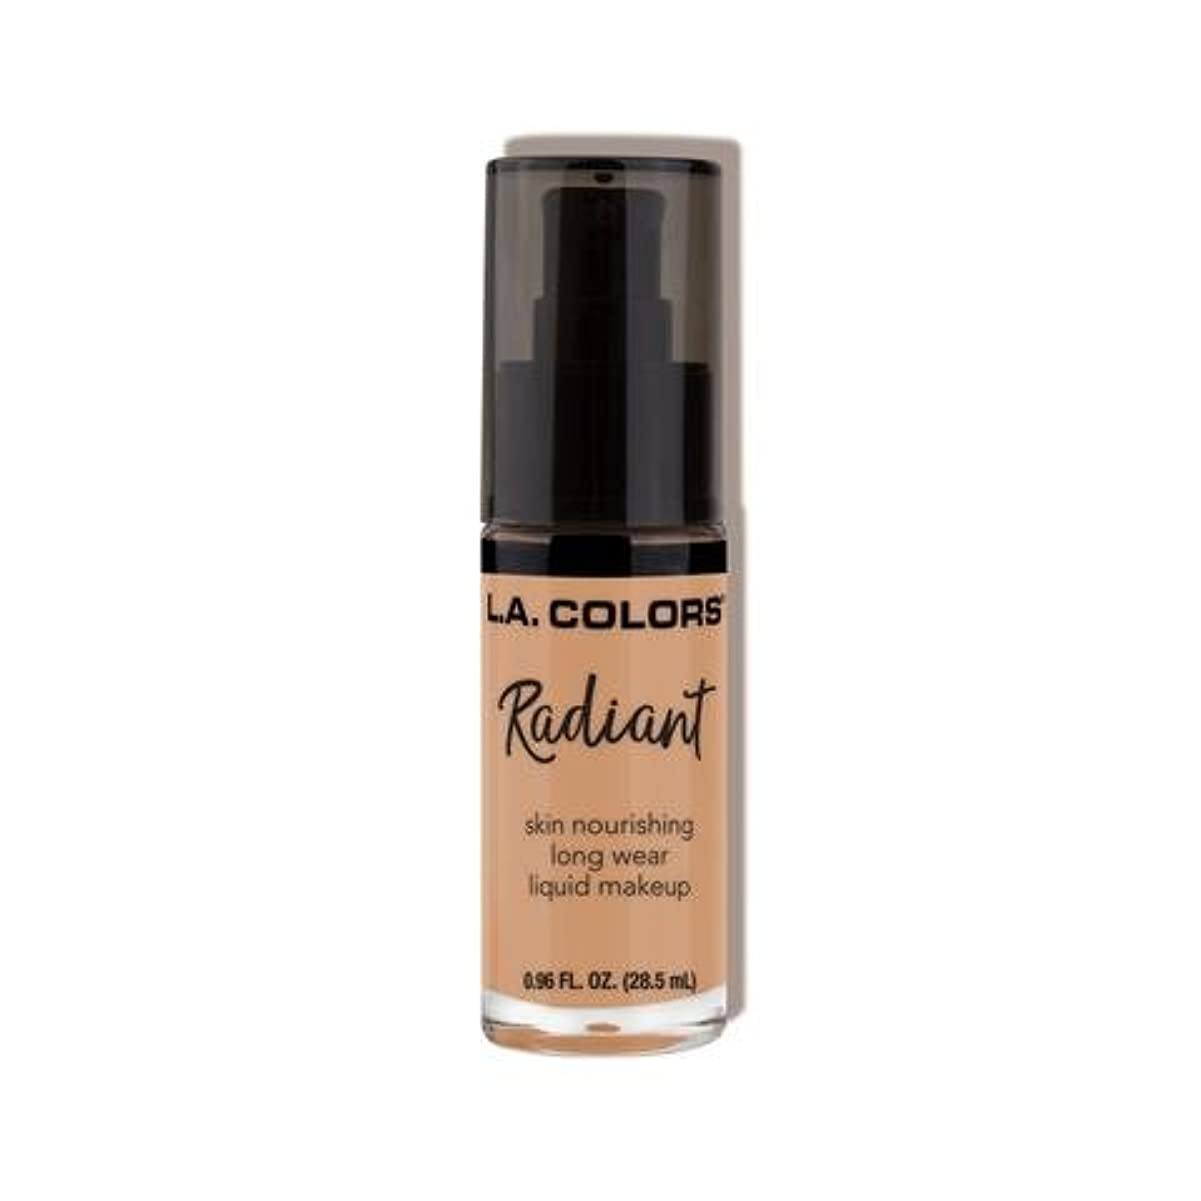 約設定副詞ショート(6 Pack) L.A. COLORS Radiant Liquid Makeup - Light Tan (並行輸入品)